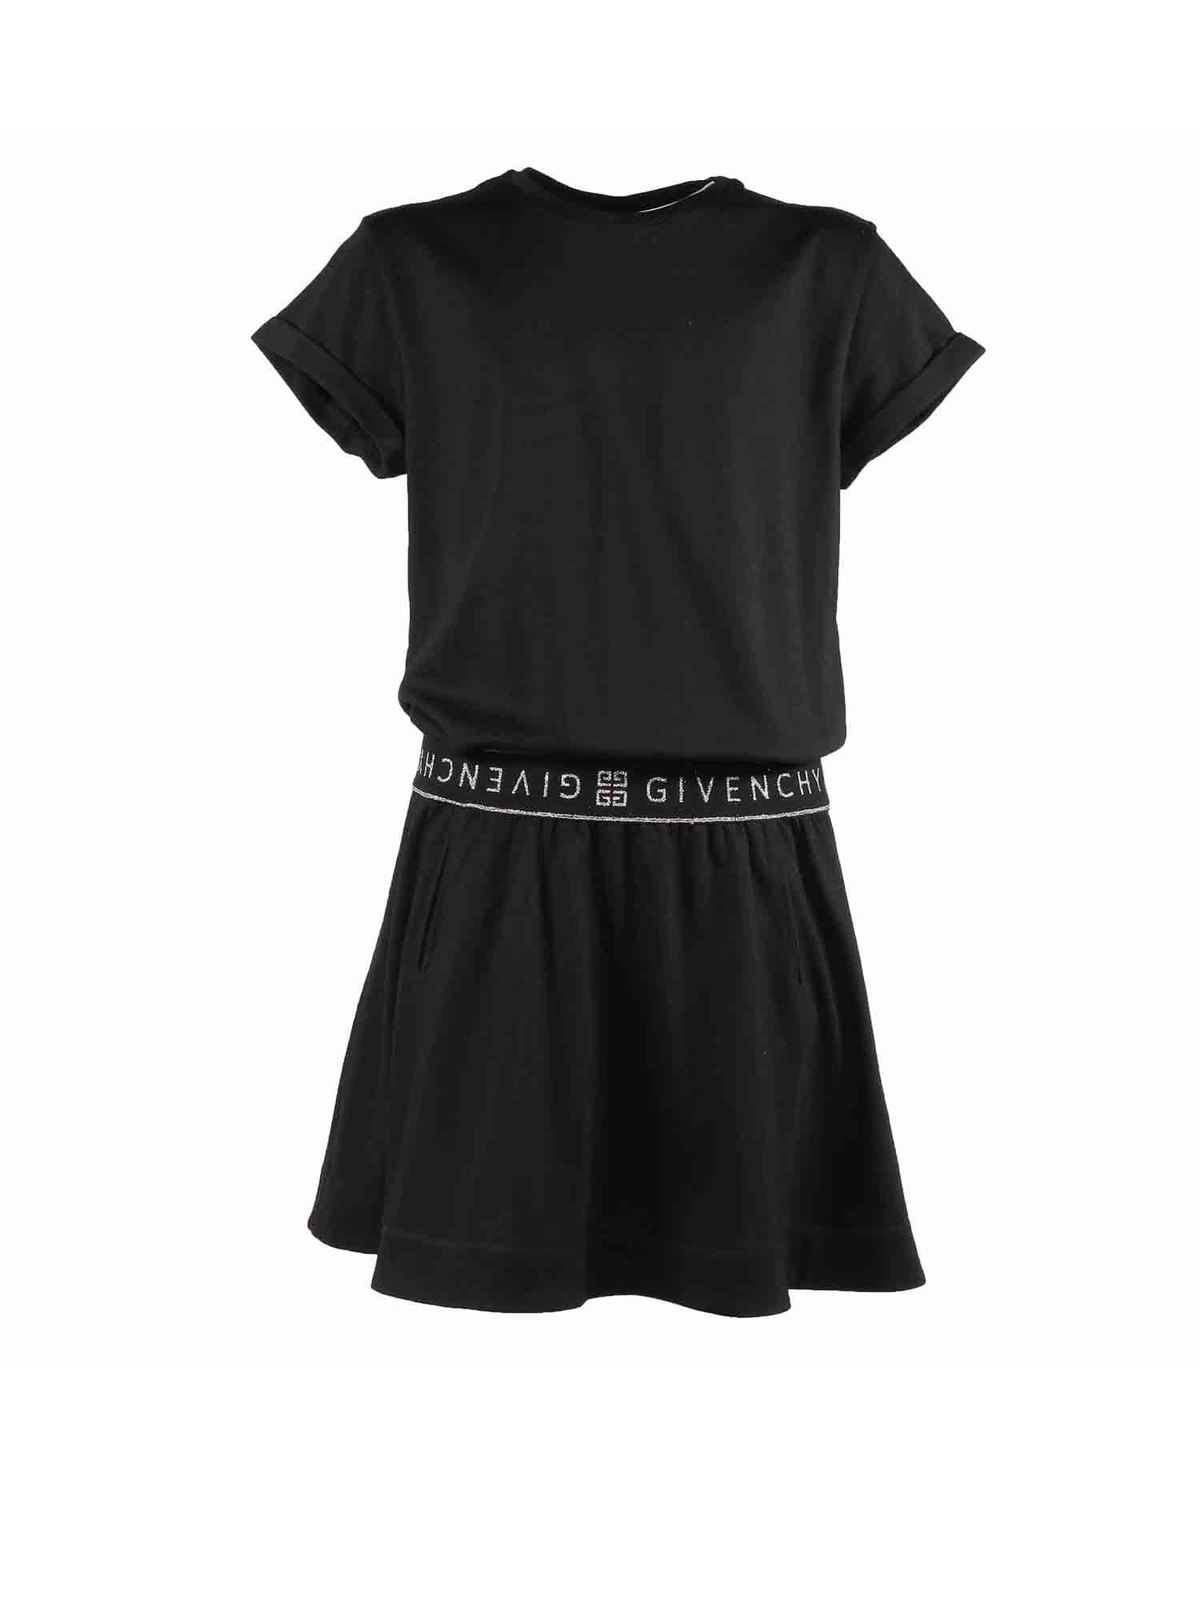 Givenchy Kids' Branded Waistband Dress In Black